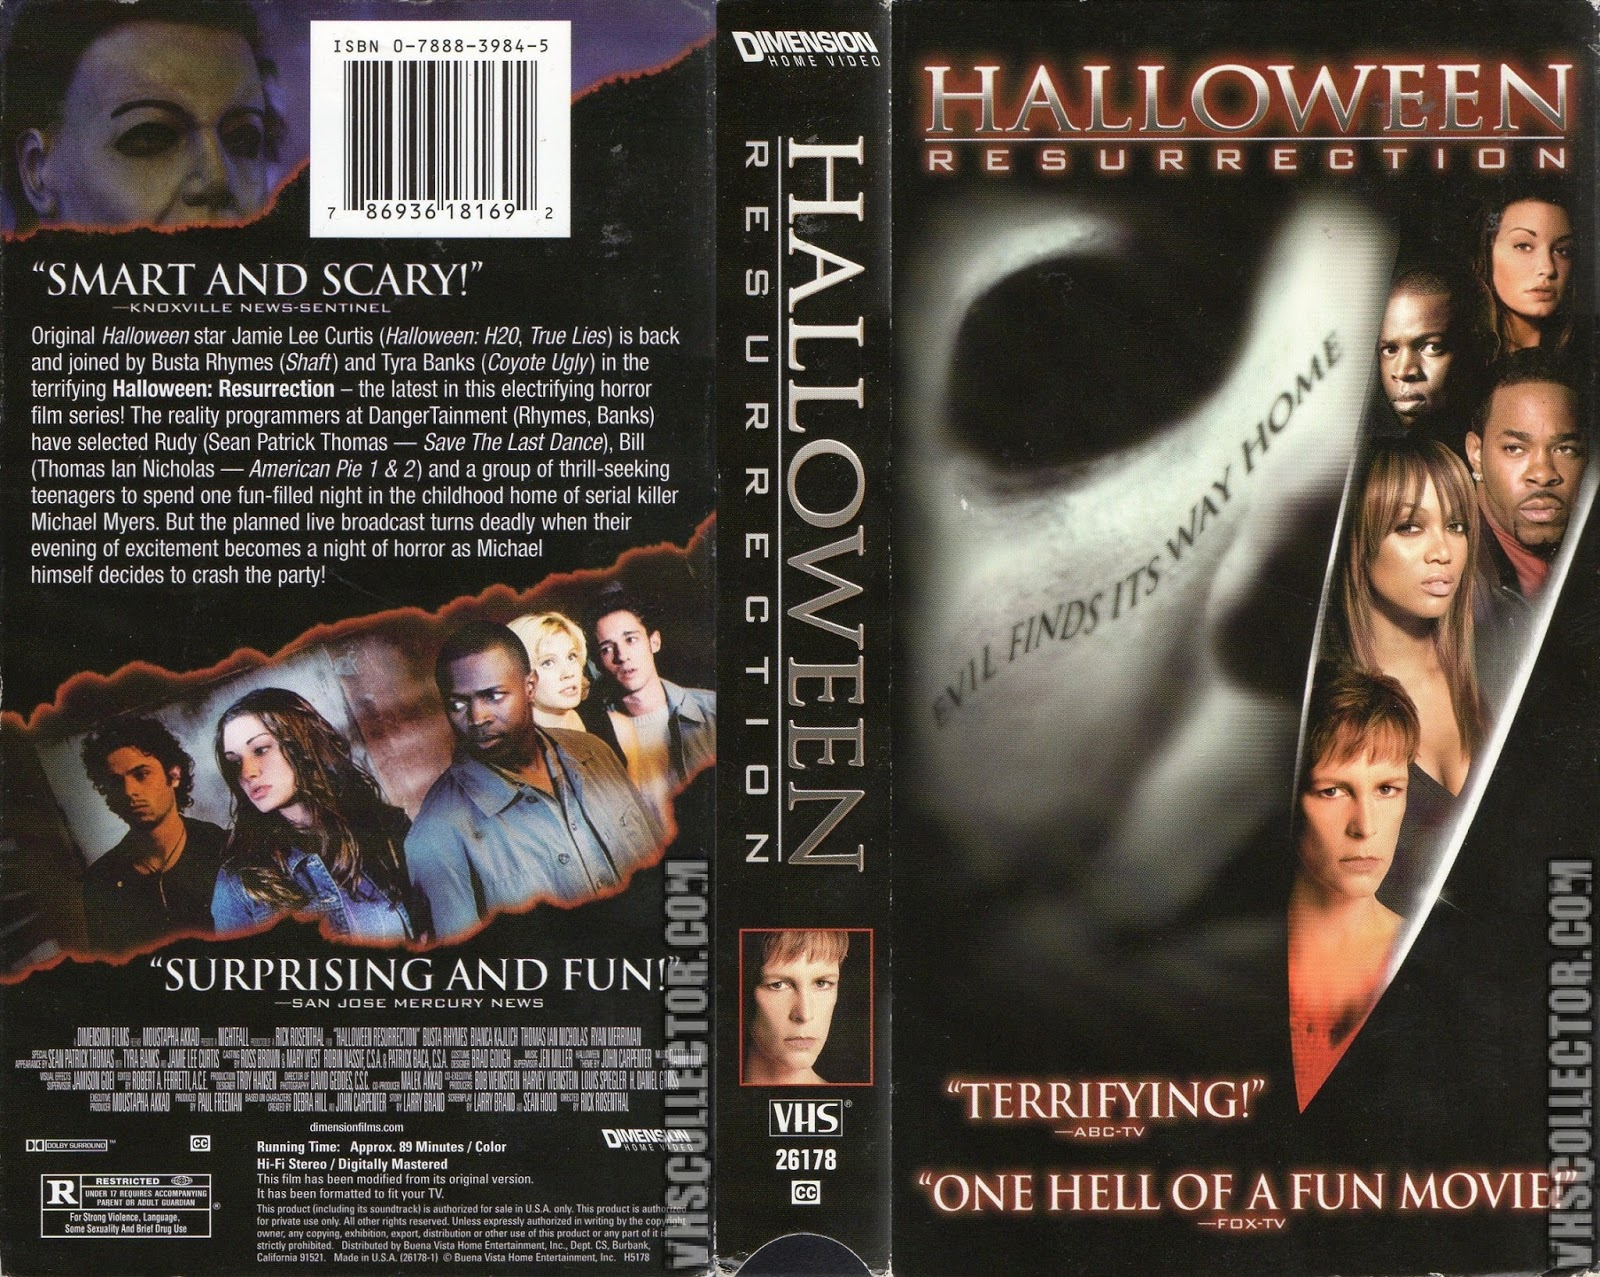 the horrors of halloween: halloween resurrection (2002) vhs, dvd and